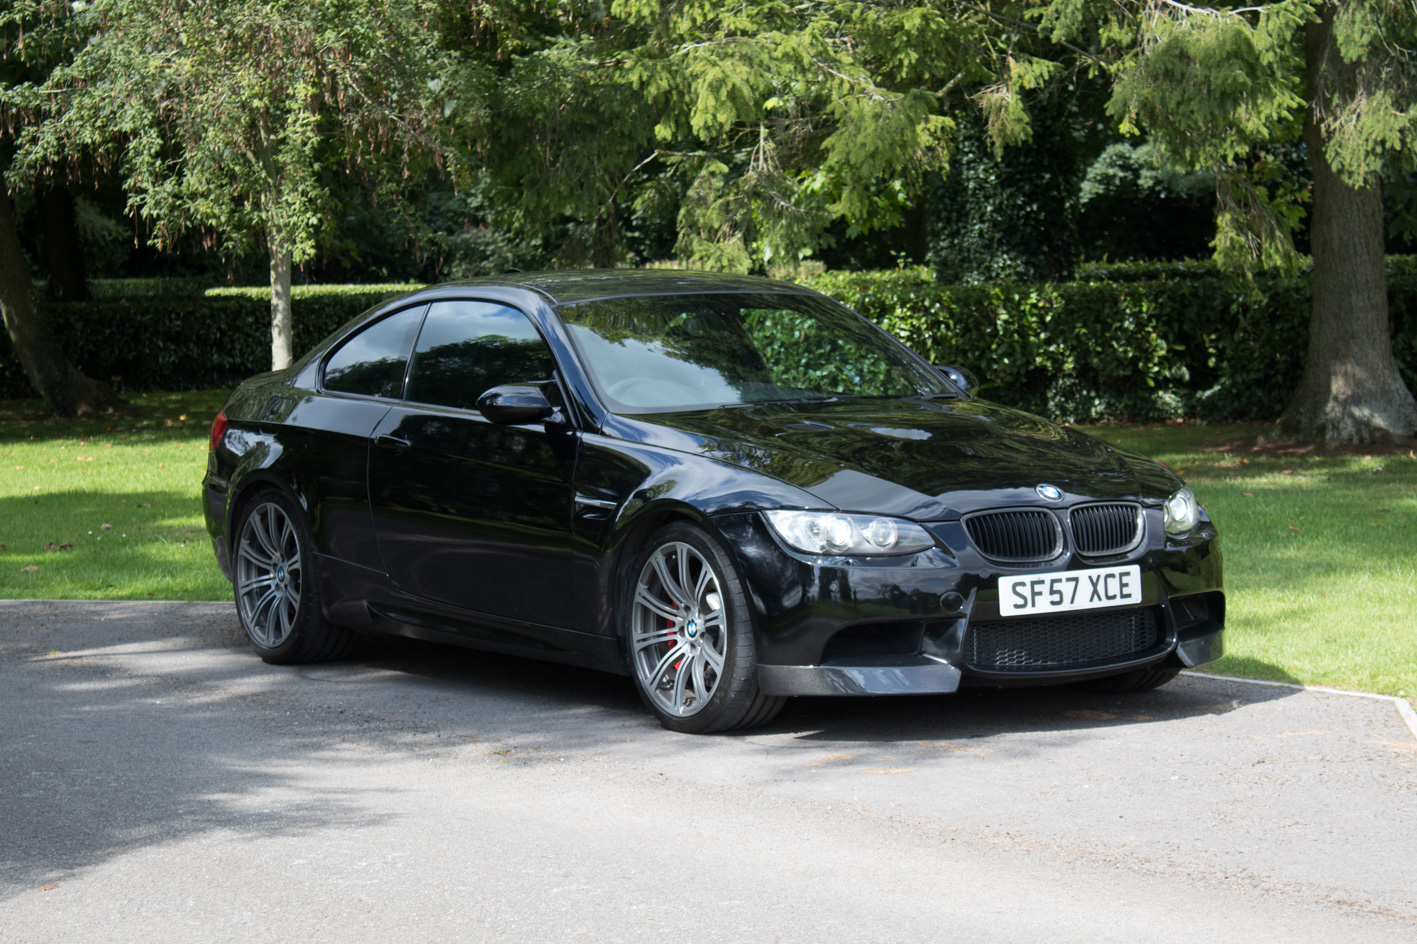 Sold 2007 Bmw M3 E92 V8 Supercharged Ess Cars Of Somerset